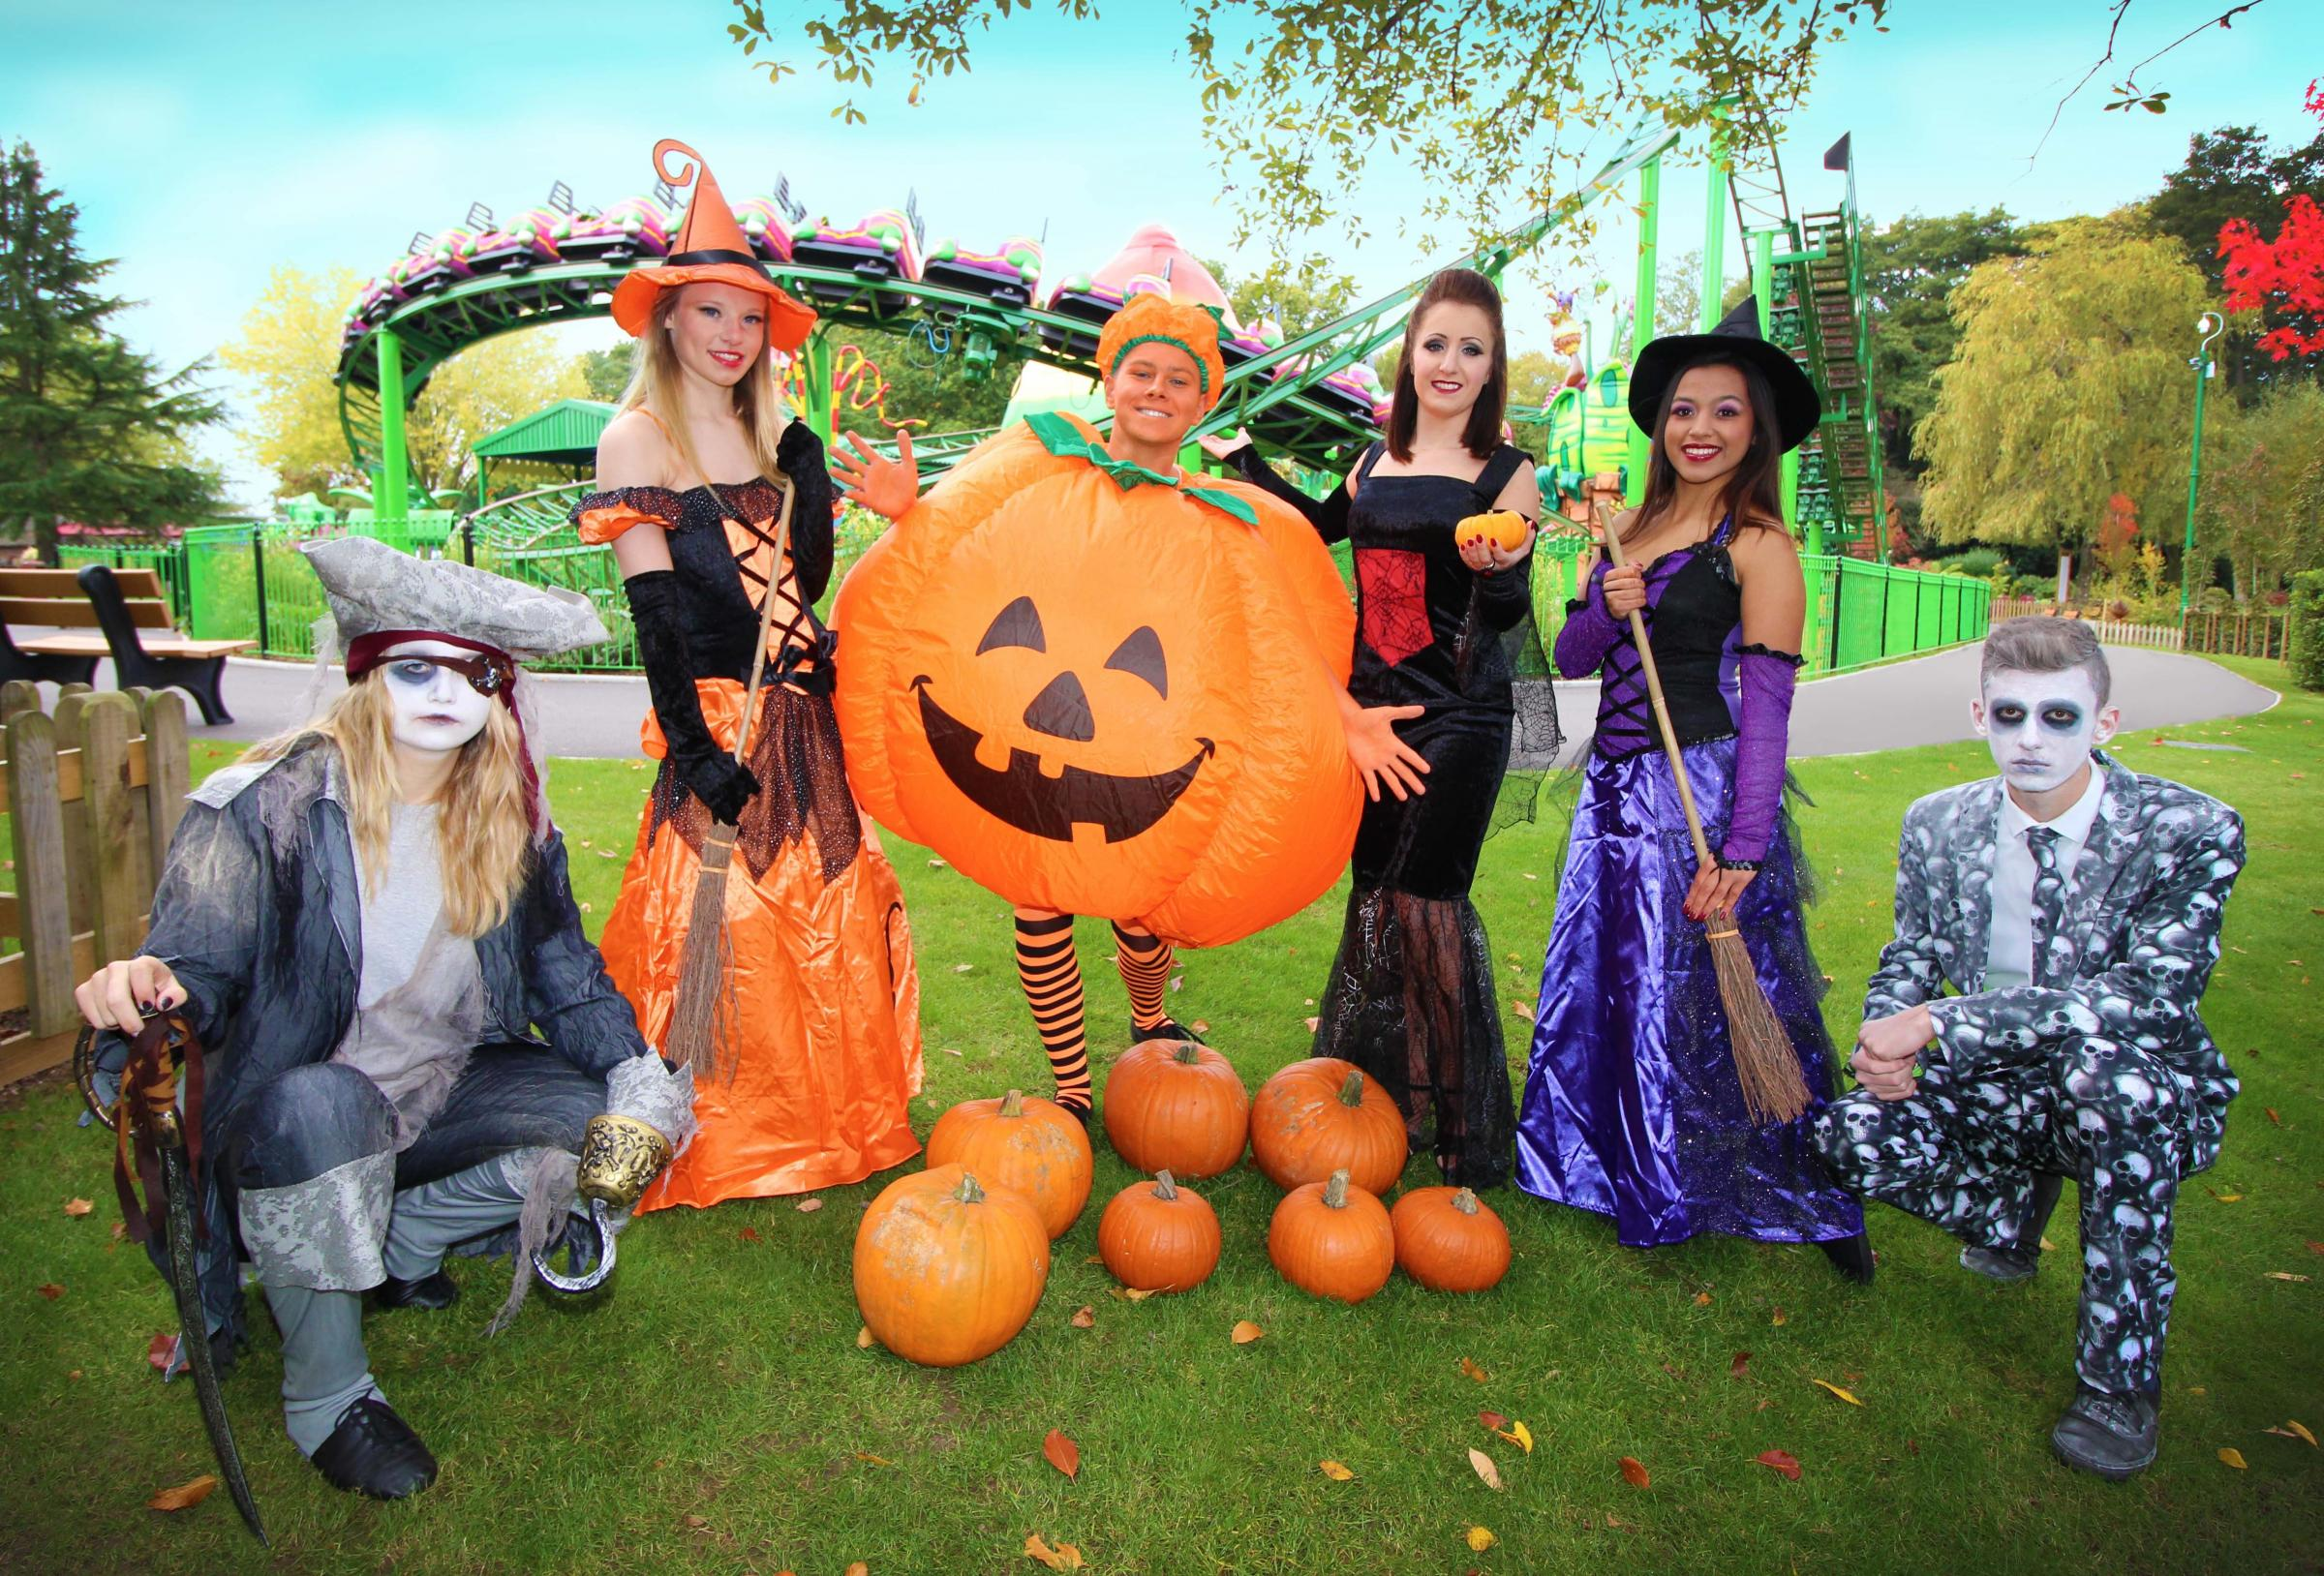 Happy Halloween comes to Paultons Park for 2018